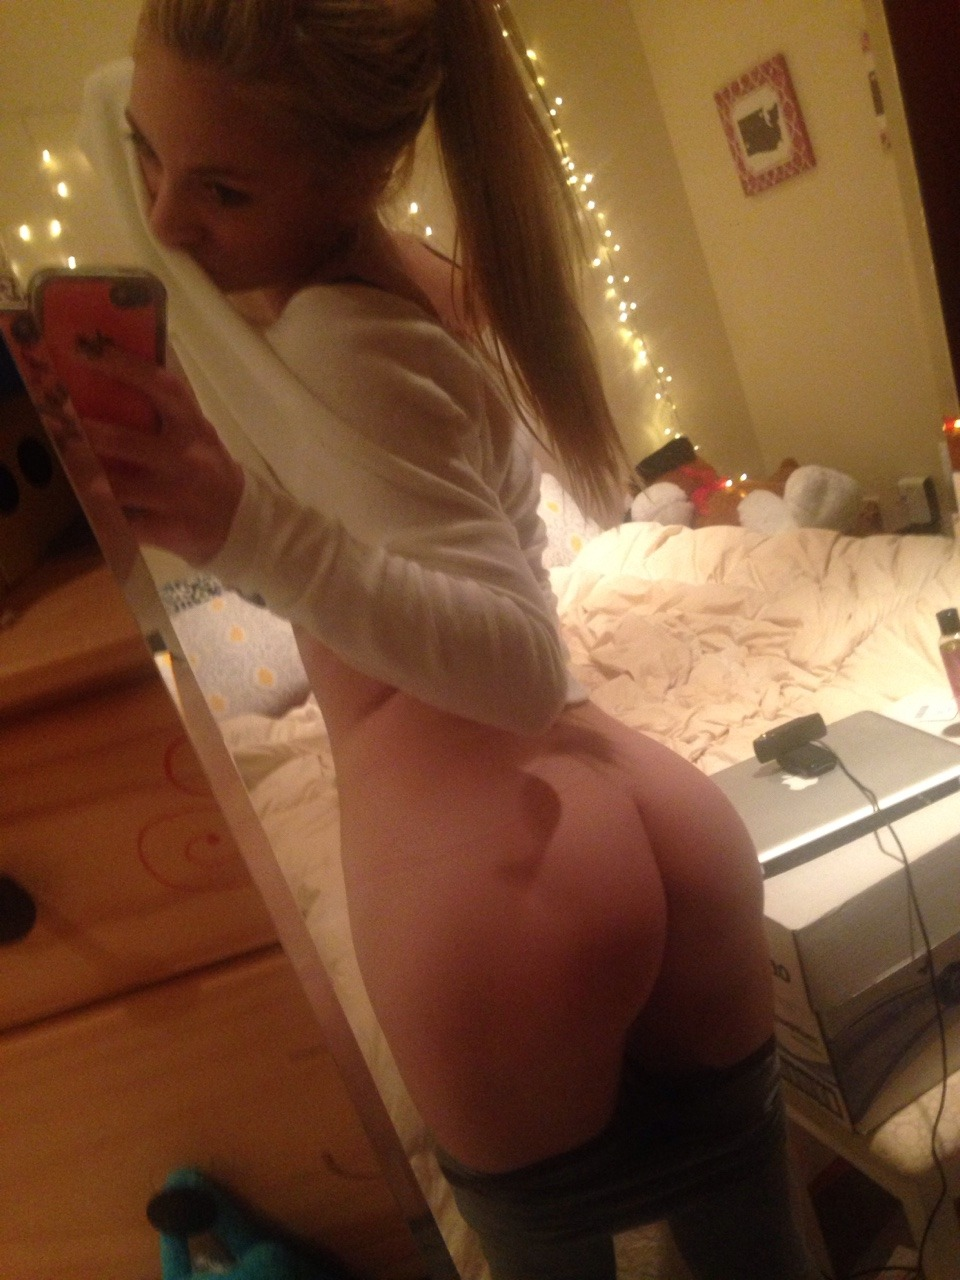 Real Girl Love Nude Selfie With Iphone 1 39 - Real Girl Love Nude Selfie With Iphone Part 1